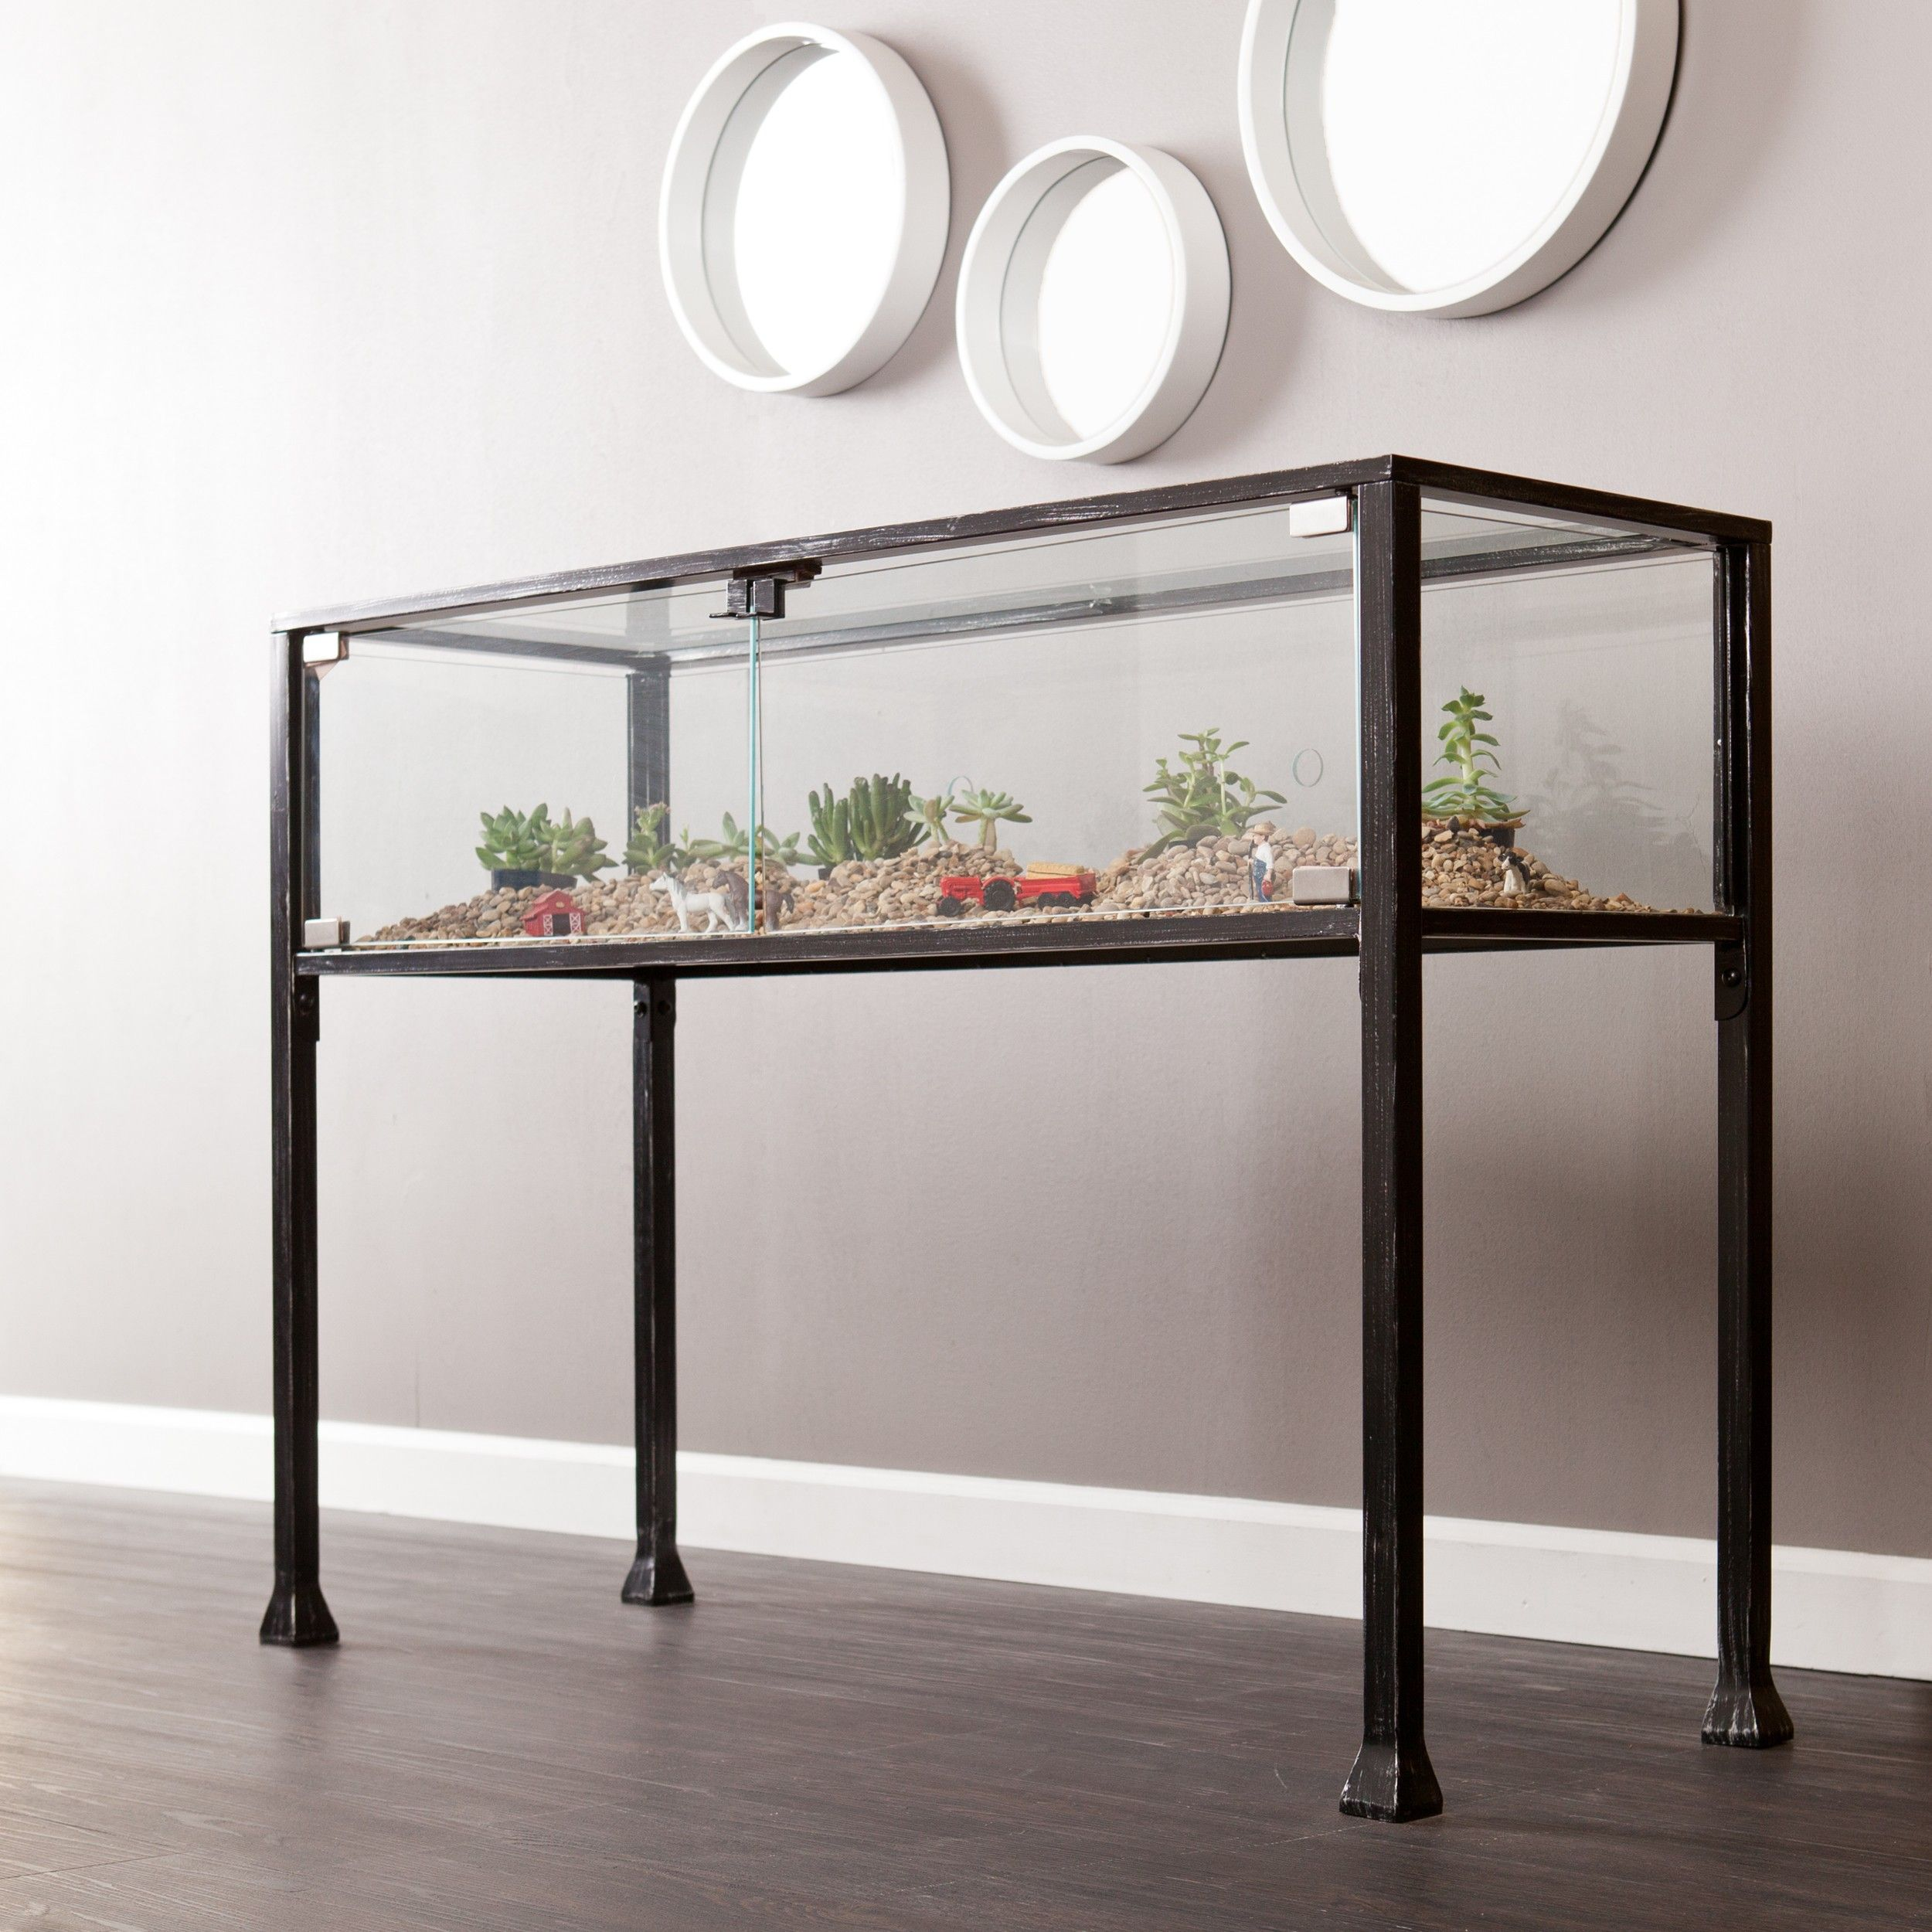 Terrarium Black Console Table with Glass Panels